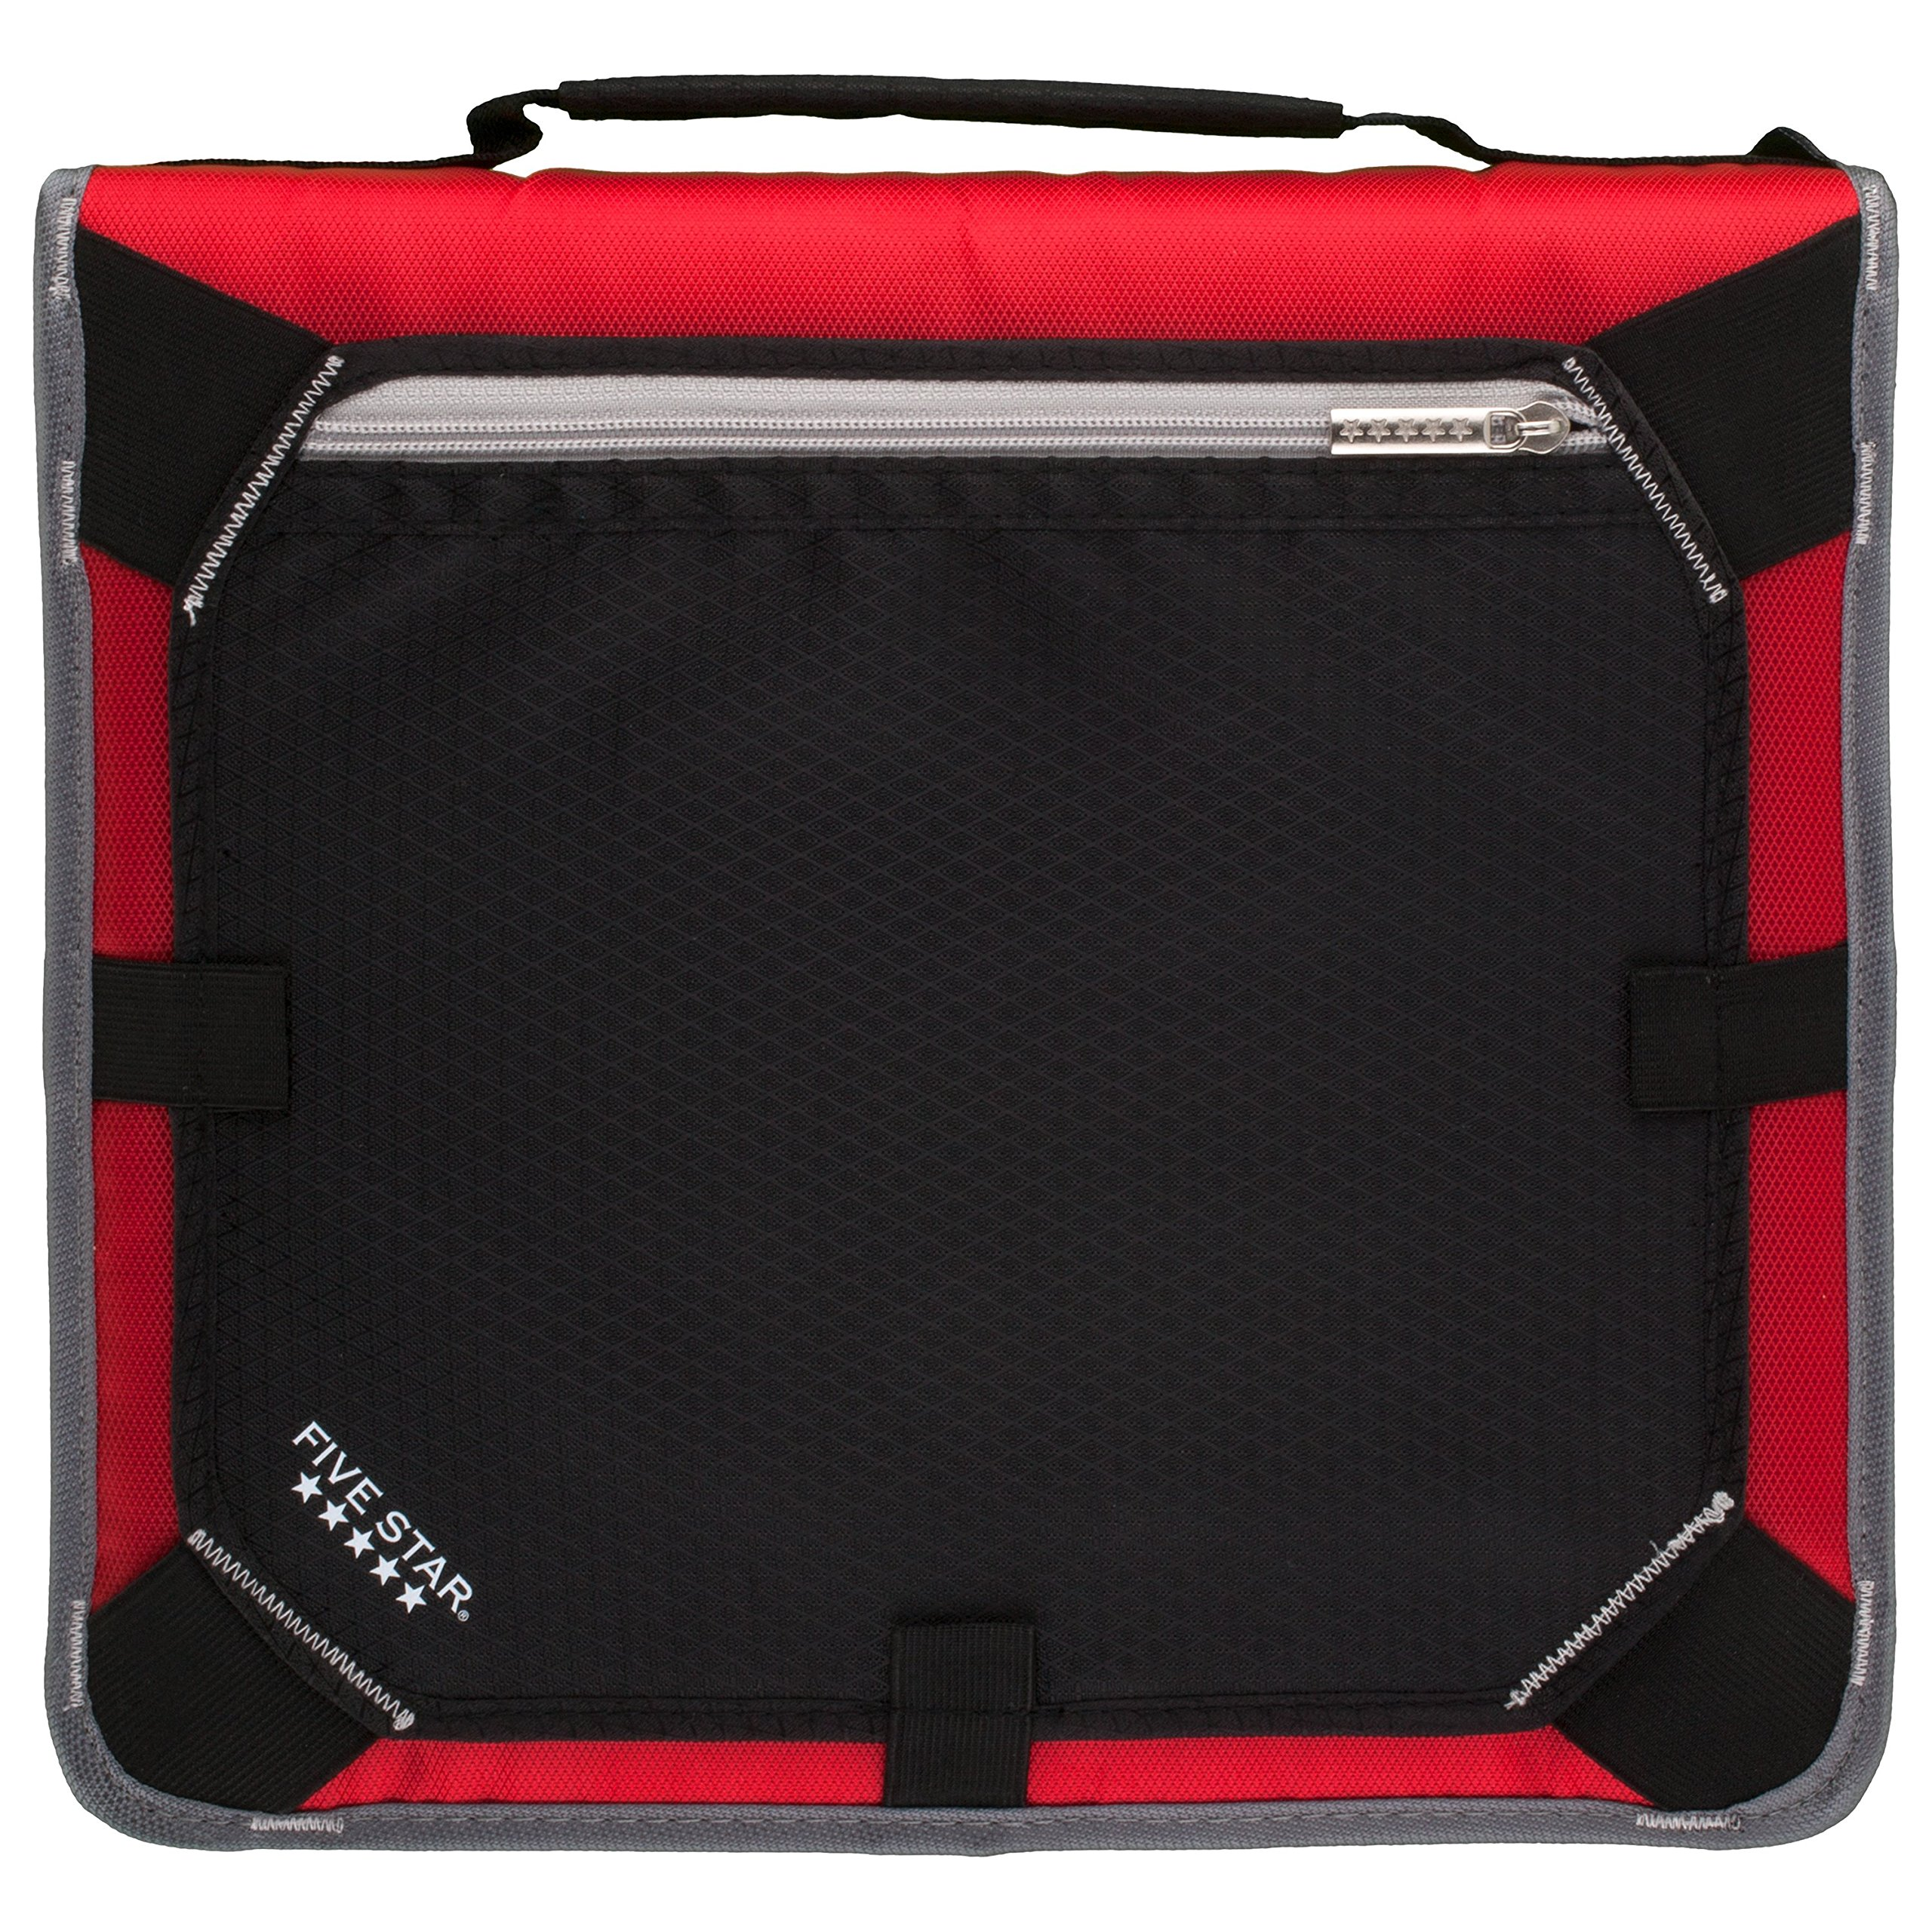 Five Star 2 Inch Zipper Binder, Expansion Panel, Durable, Red/Gray (29052BE7)